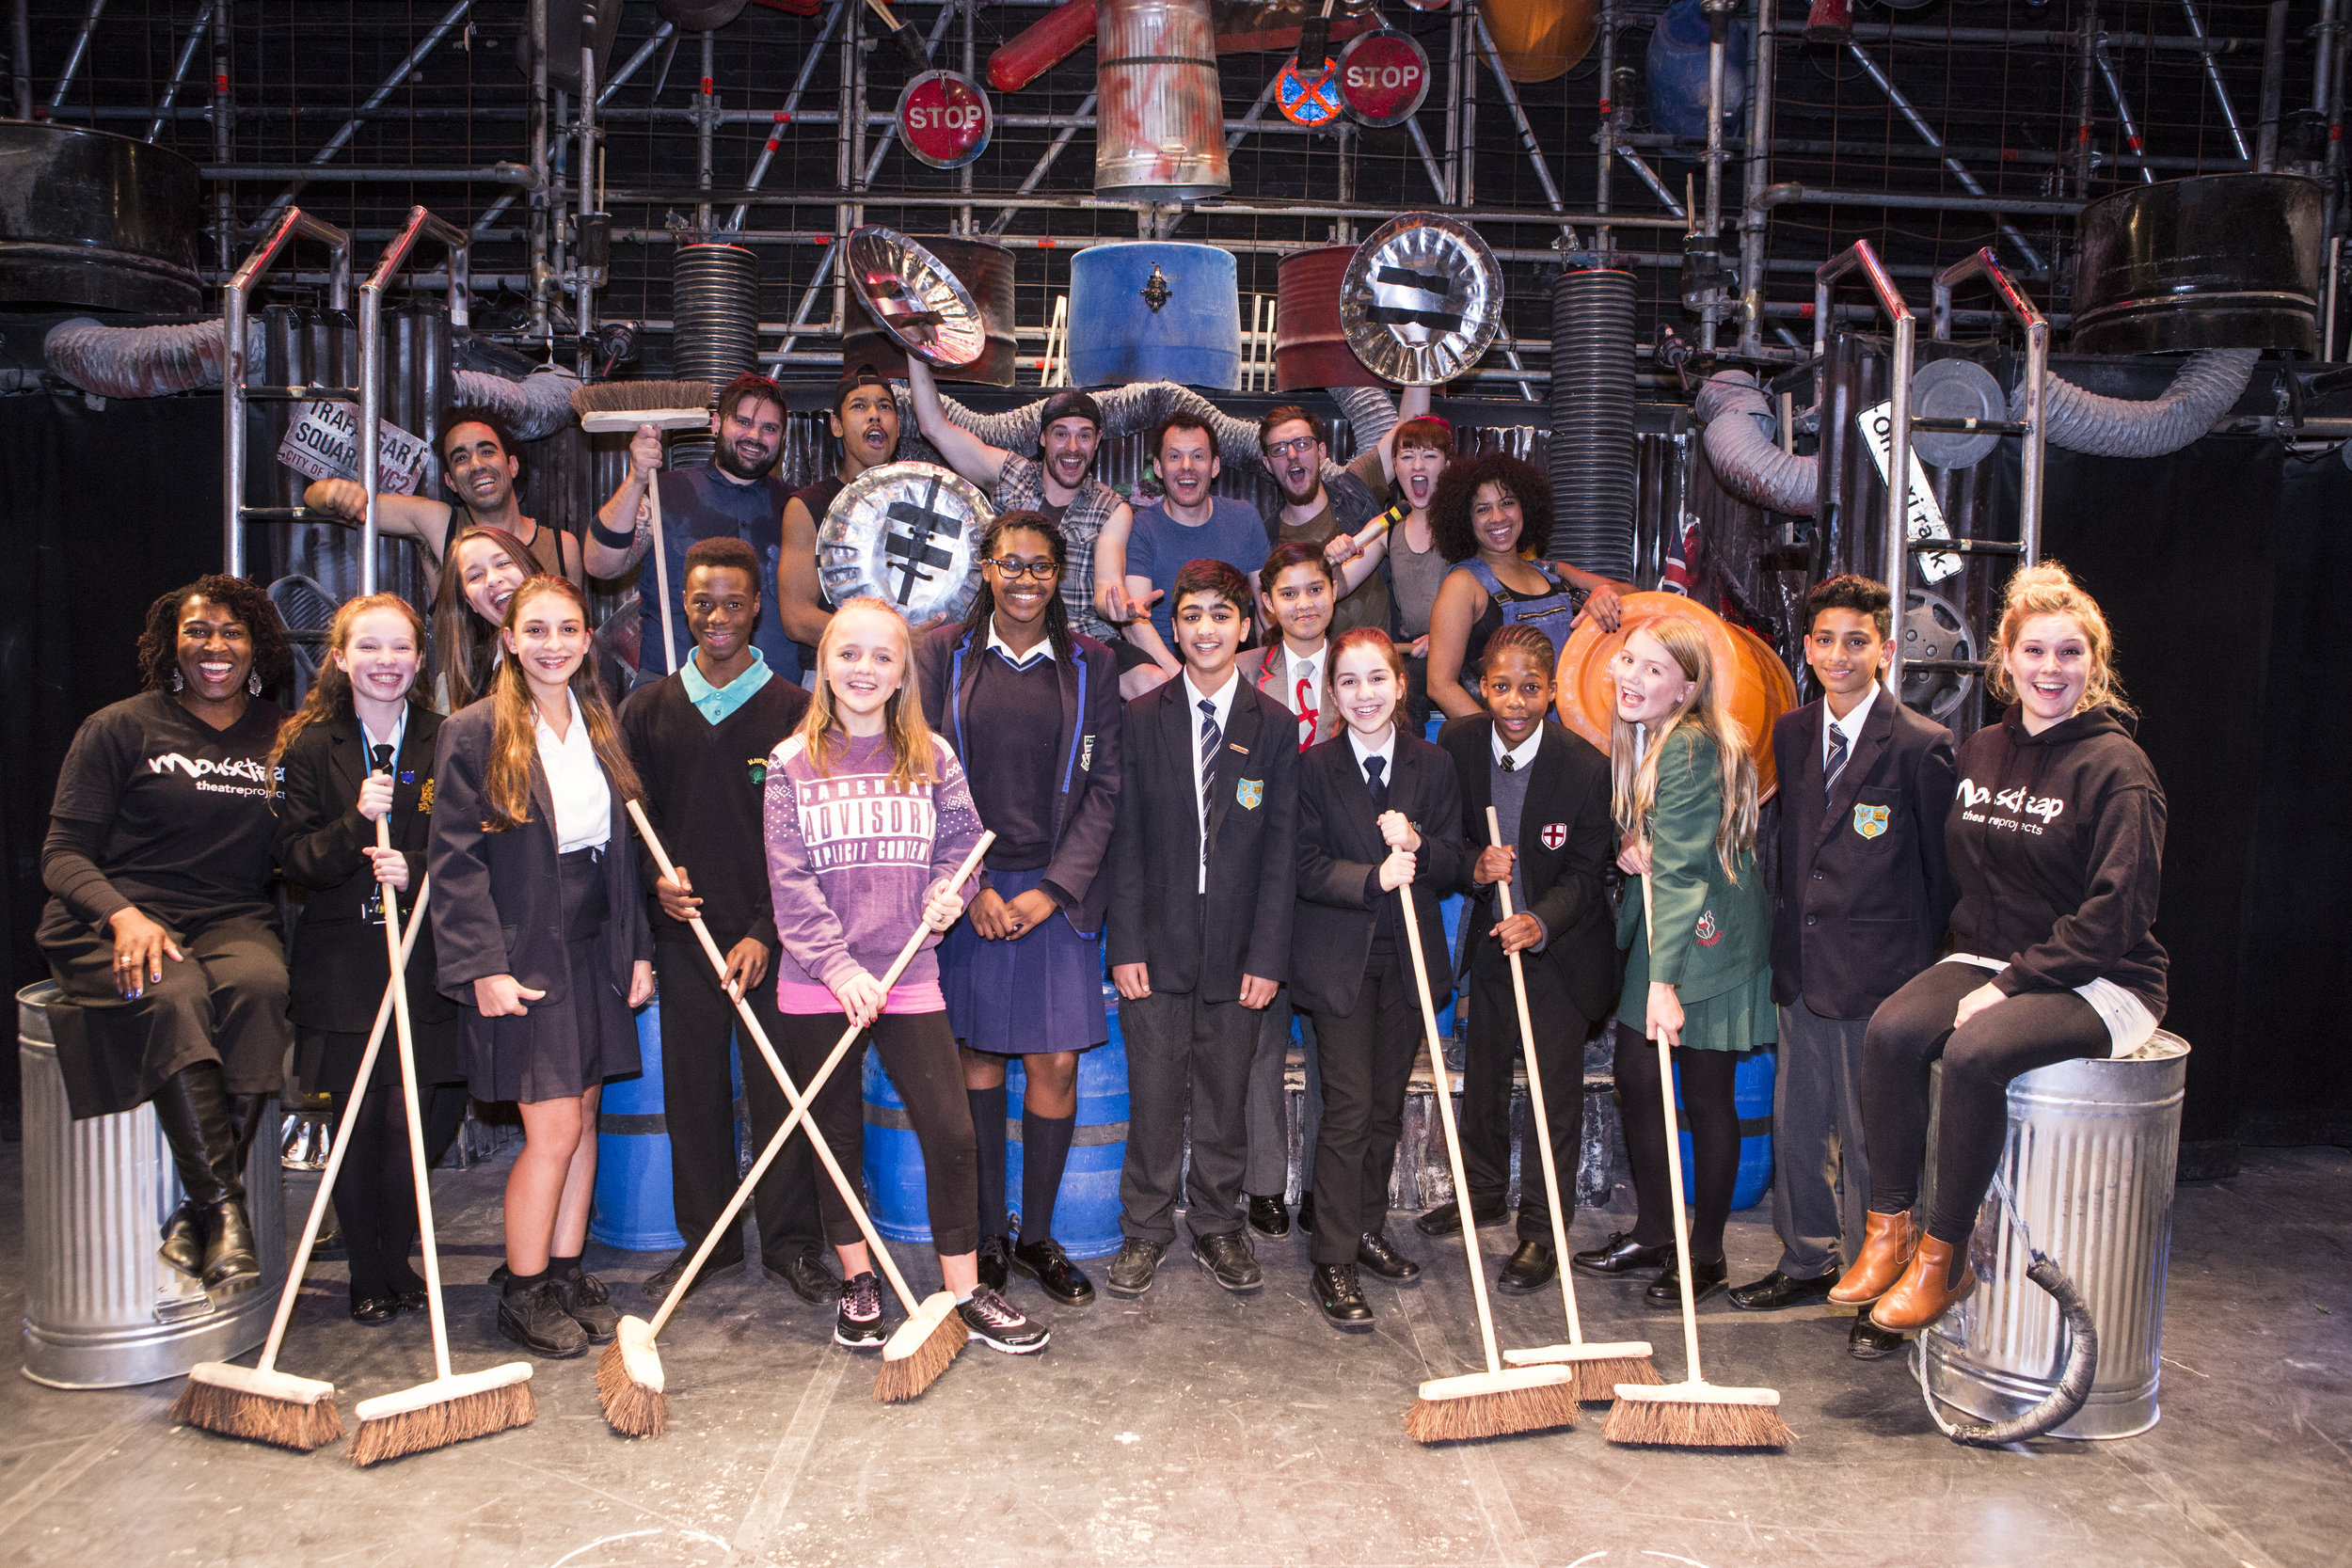 Elaine Grant (far left) and Ellie Shaw (far right) from Mousetrap Theatre Projects, with students and the cast of STOMP credit Luke Varley.jpg